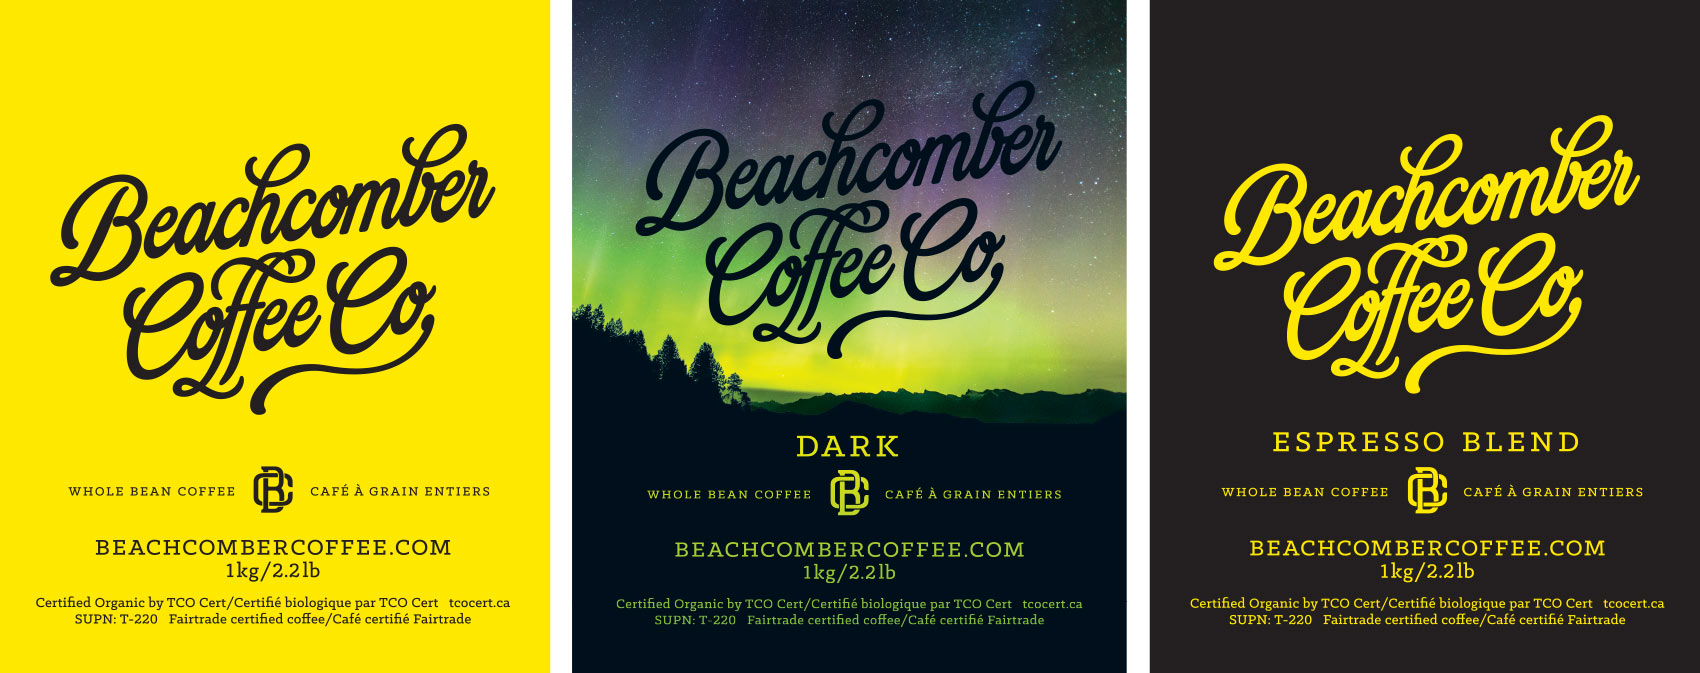 Beachcomber_coffee_bag_art.jpg